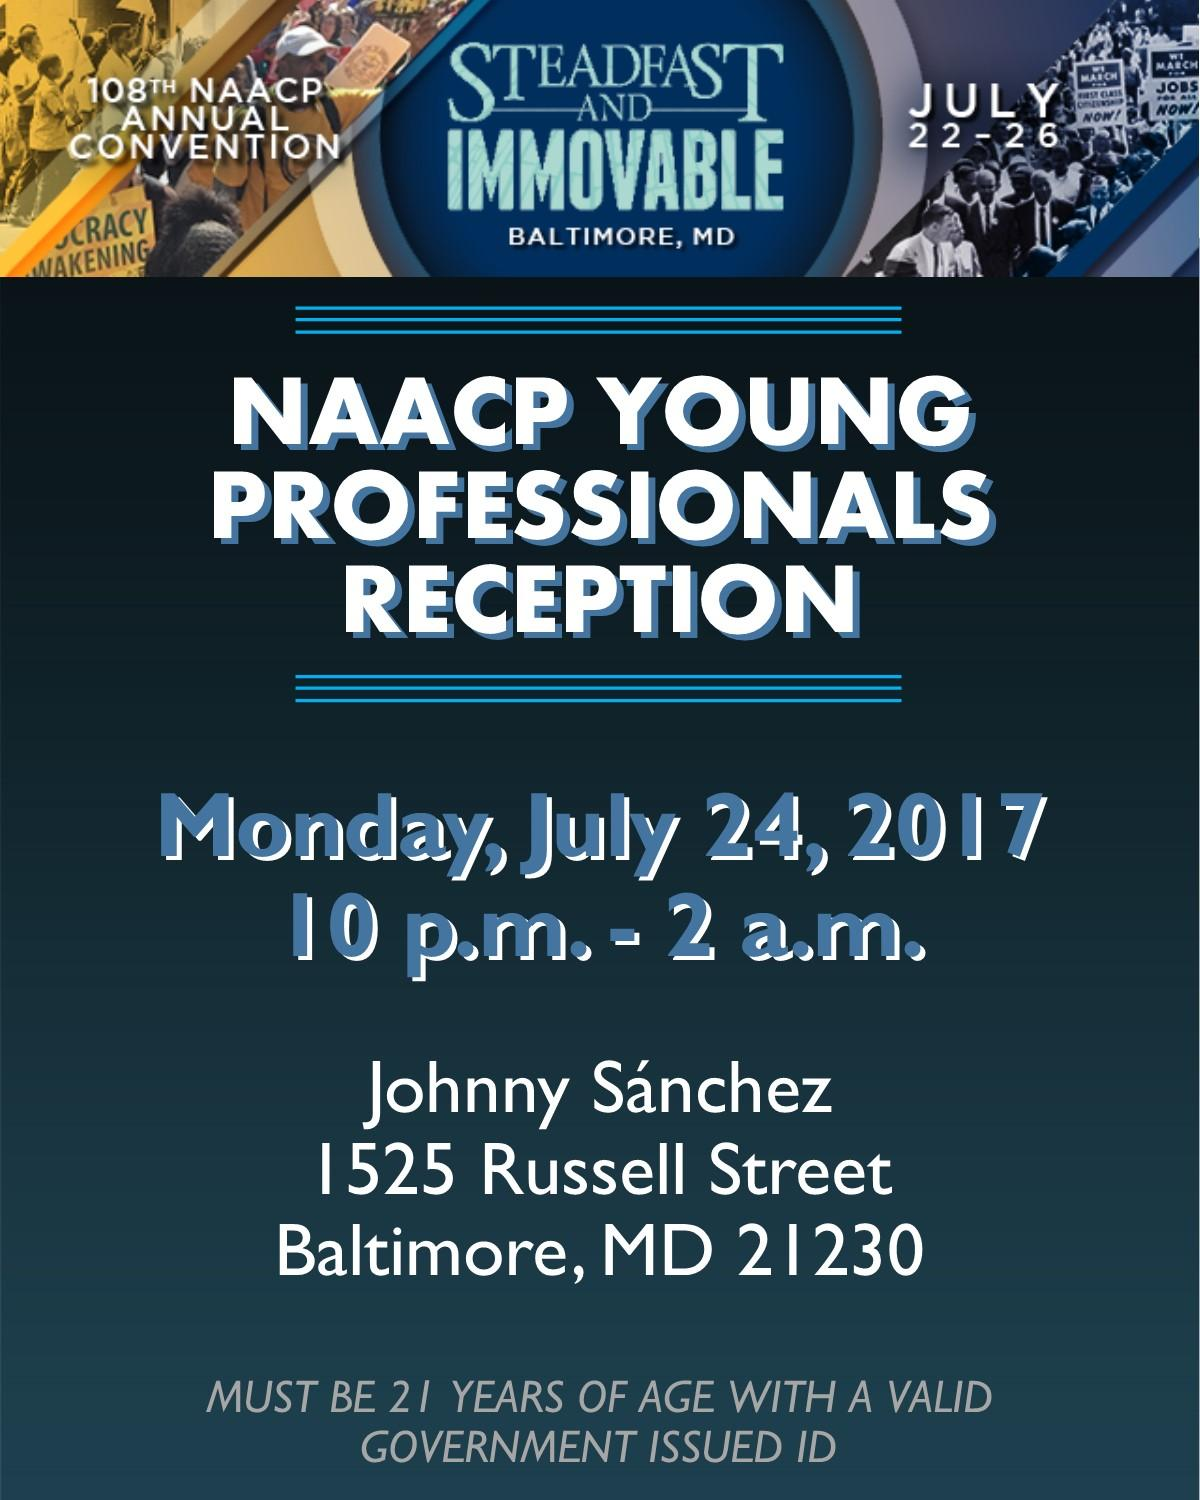 NAACP Young Professionals Reception